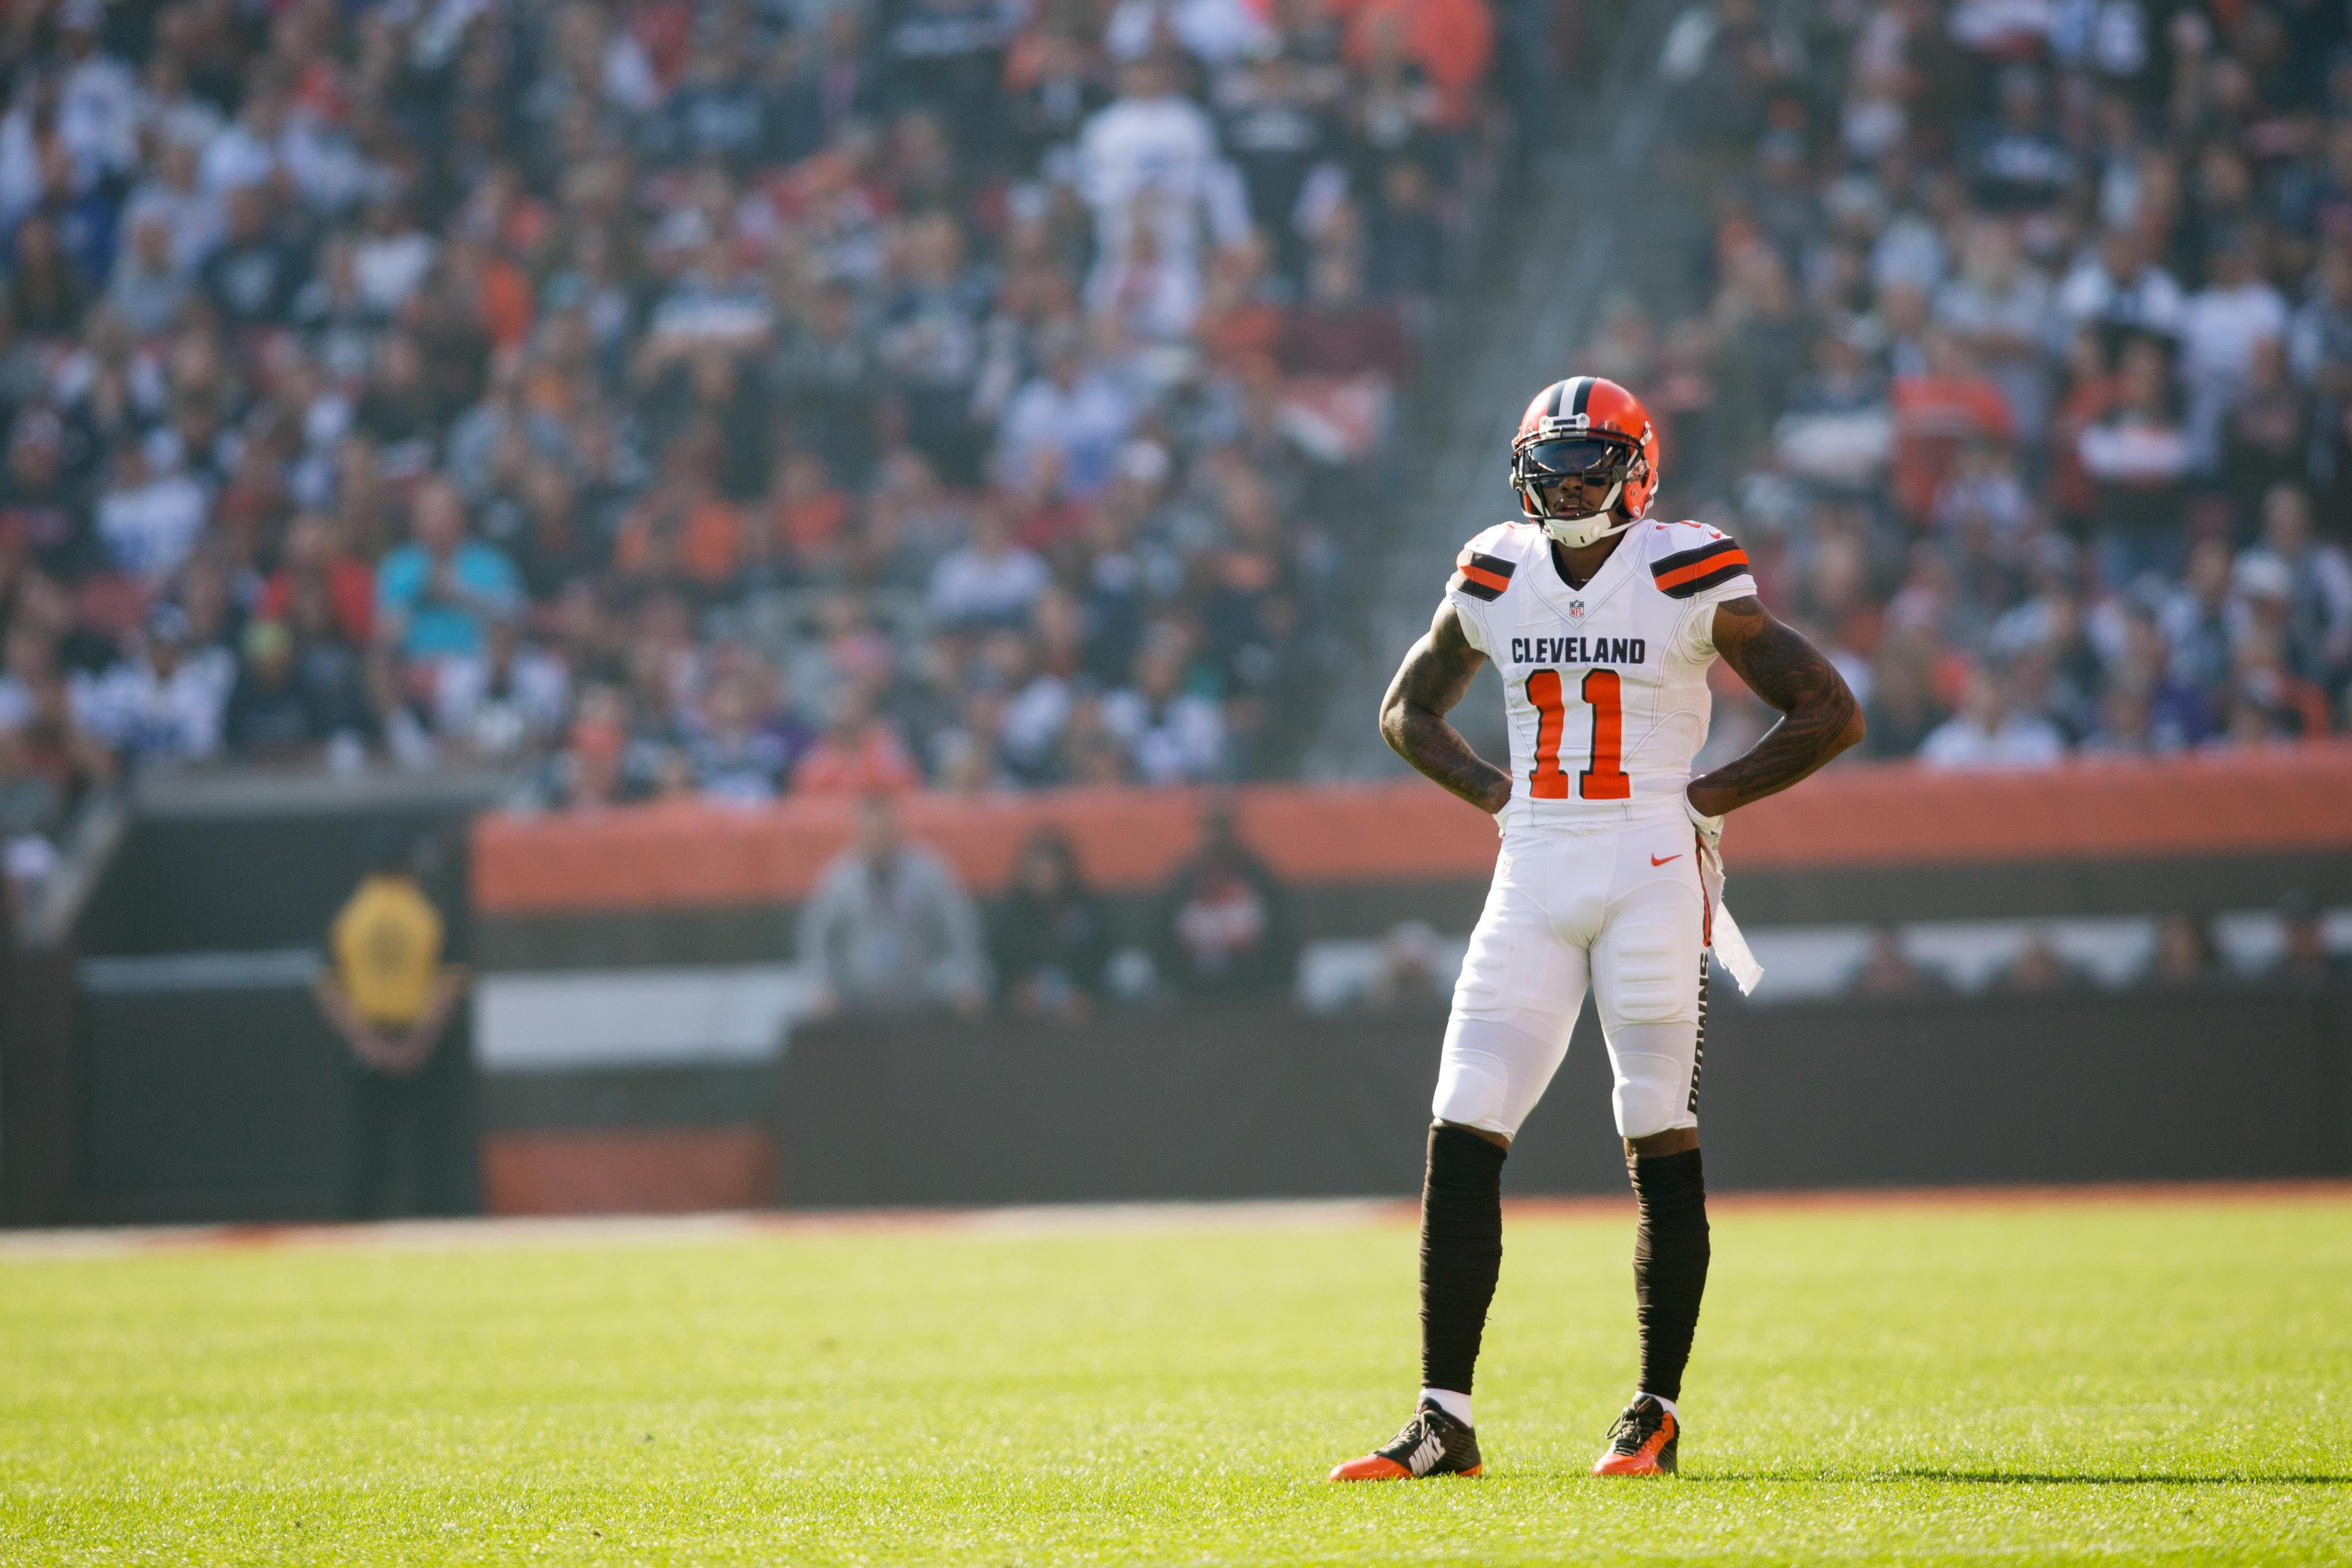 9735797-nfl-dallas-cowboys-at-cleveland-browns